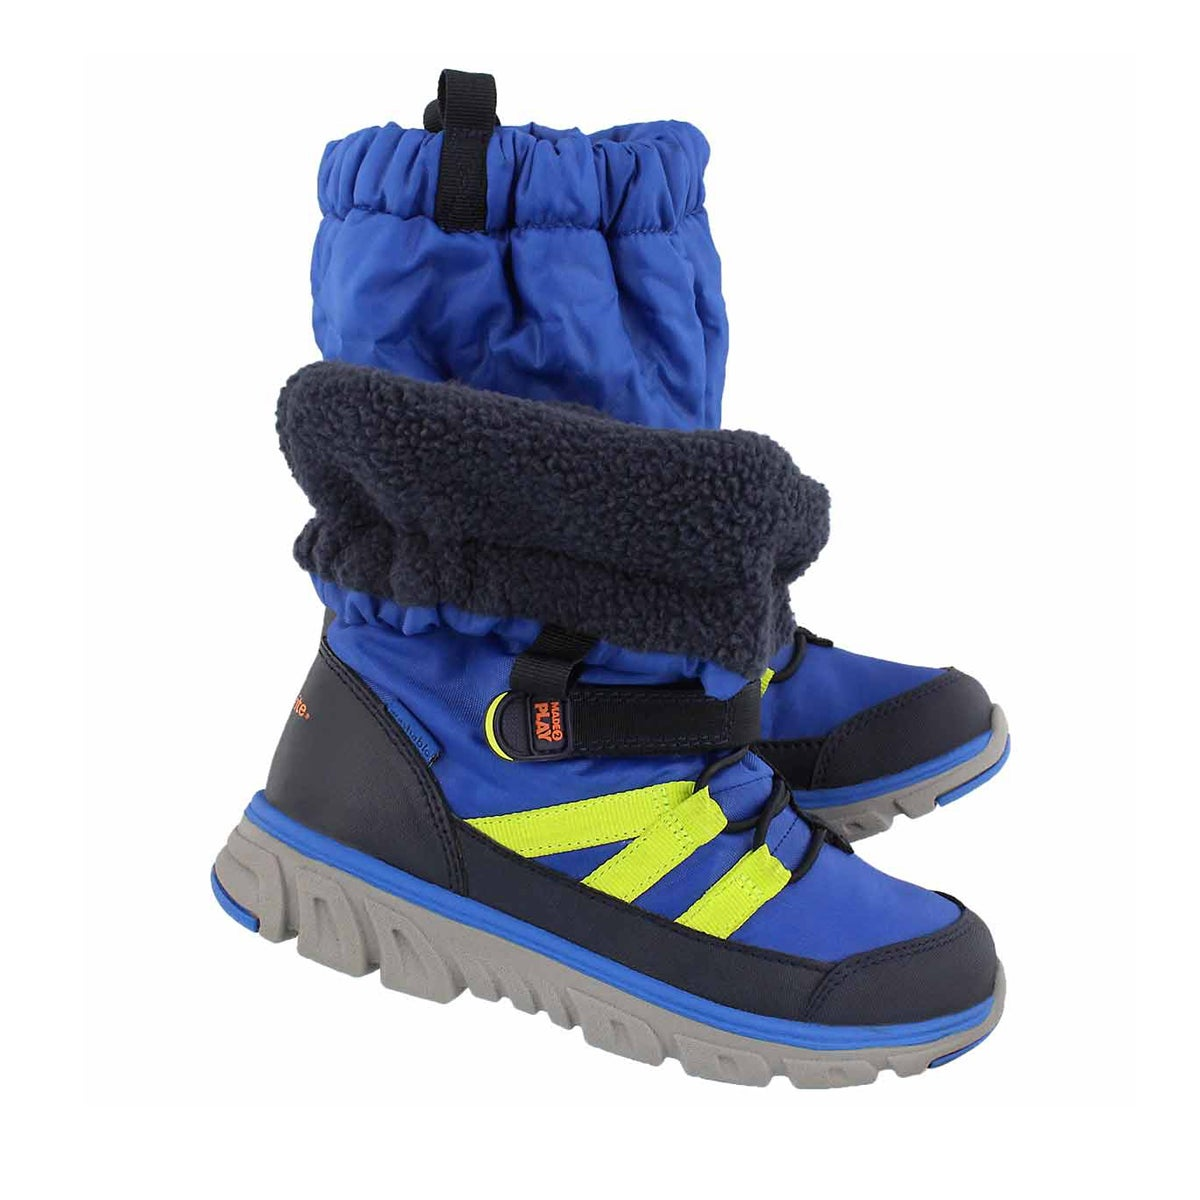 Bys M2P Sneaker Boot blue winter boot